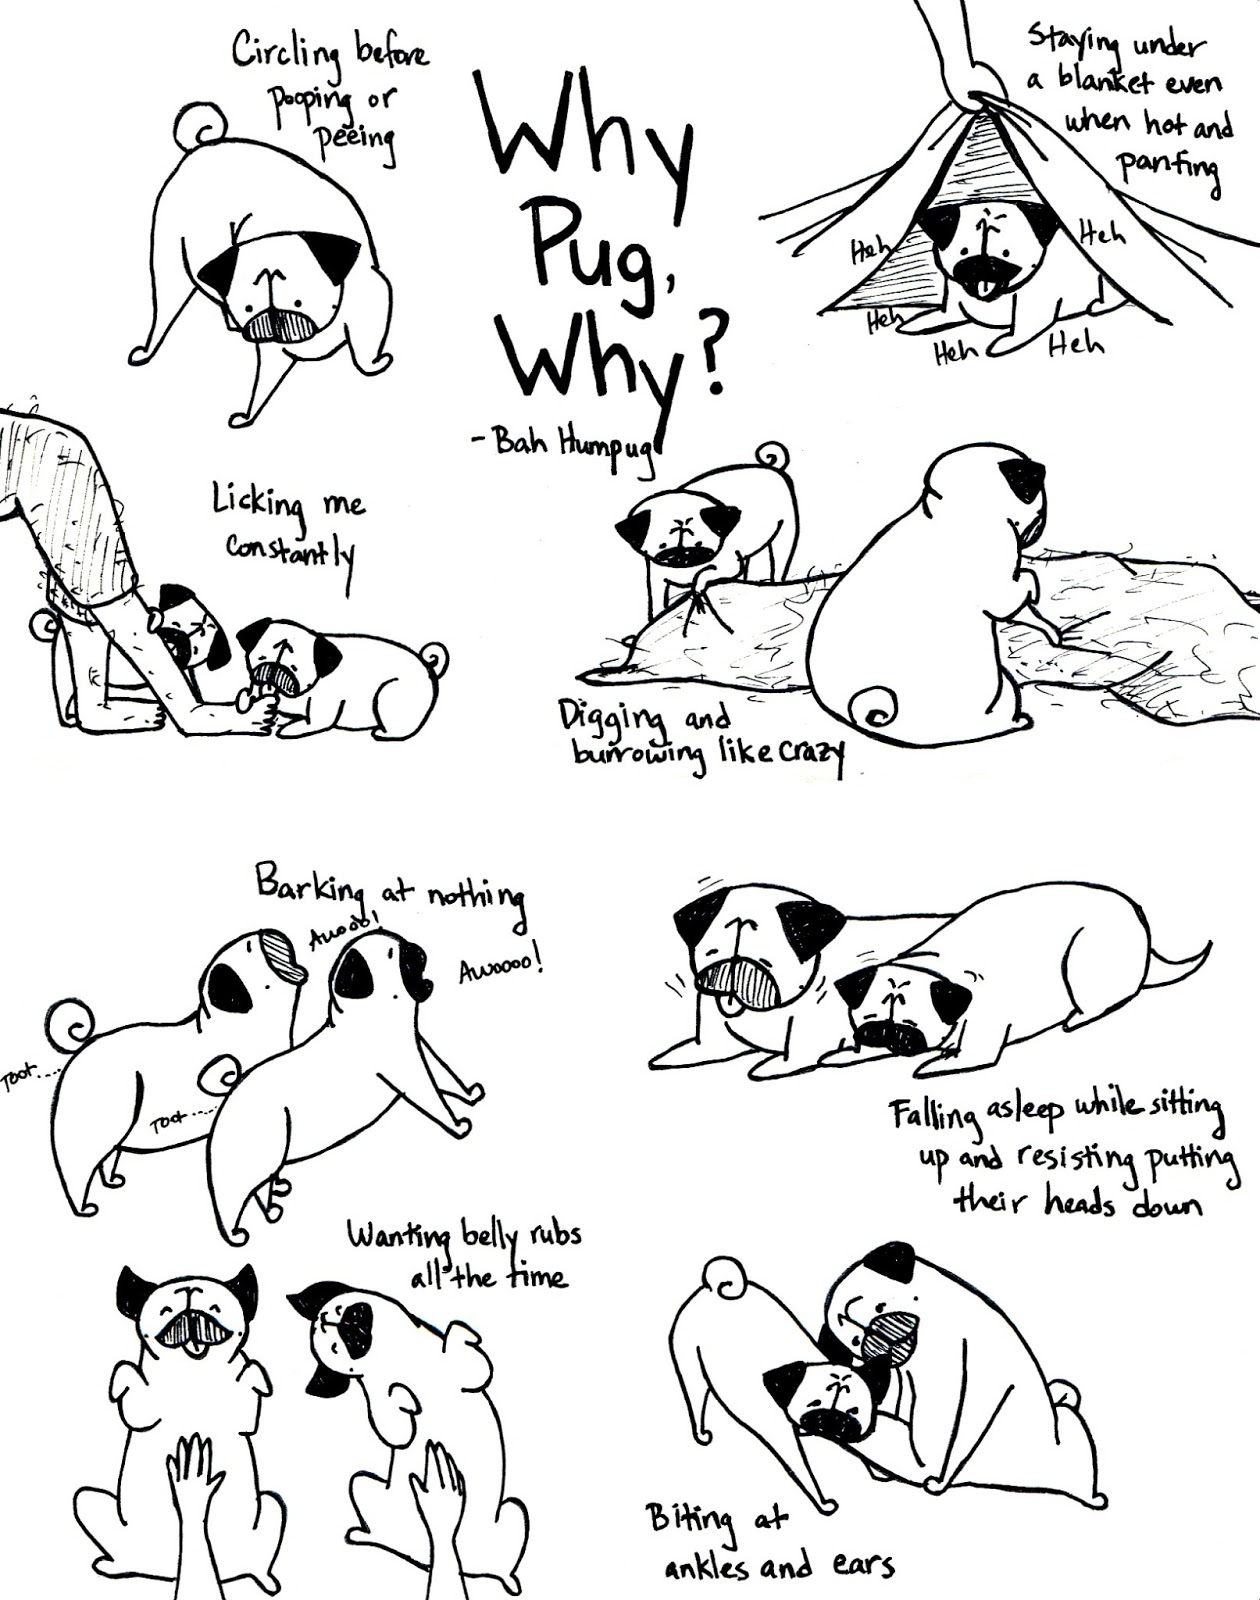 Bah Humpug: Why Pug, Why?